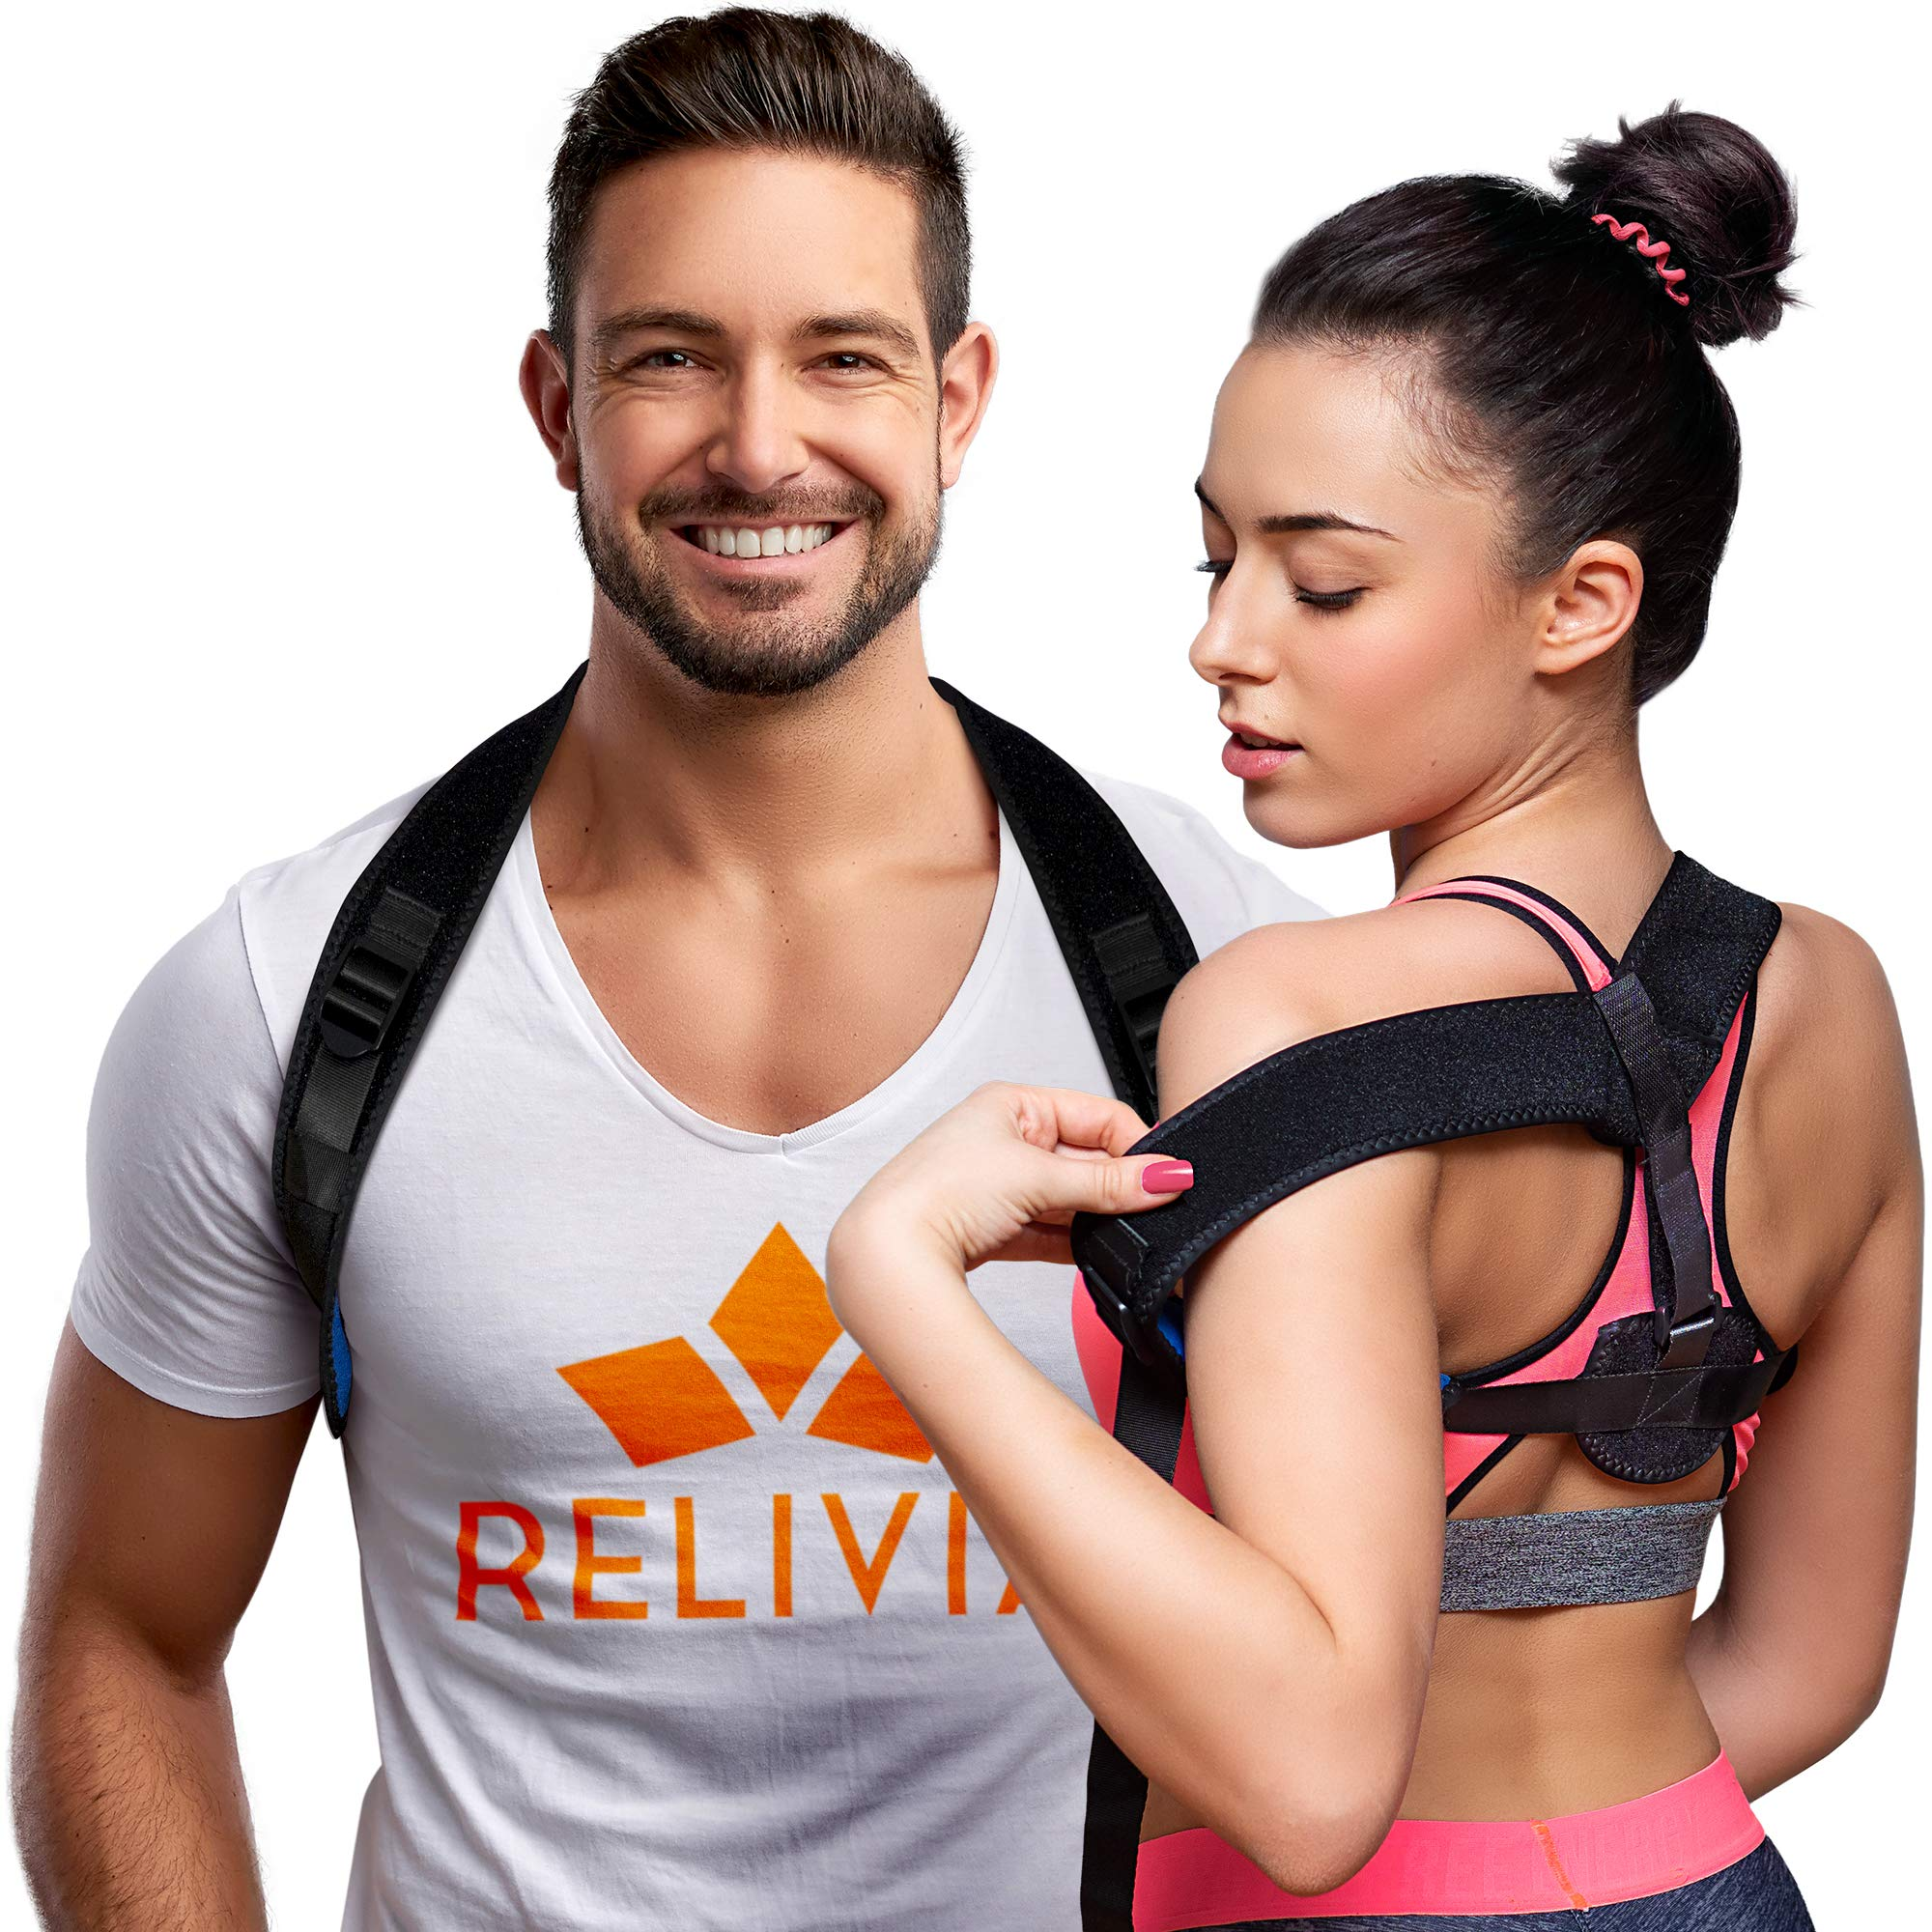 Posture Corrector for Men and Women - Back Straightener for Clavicle Support - Upper Back Brace Providing Pain Relief for Neck, Back & Shoulders - for Everyday Use in Office, Home and Gym